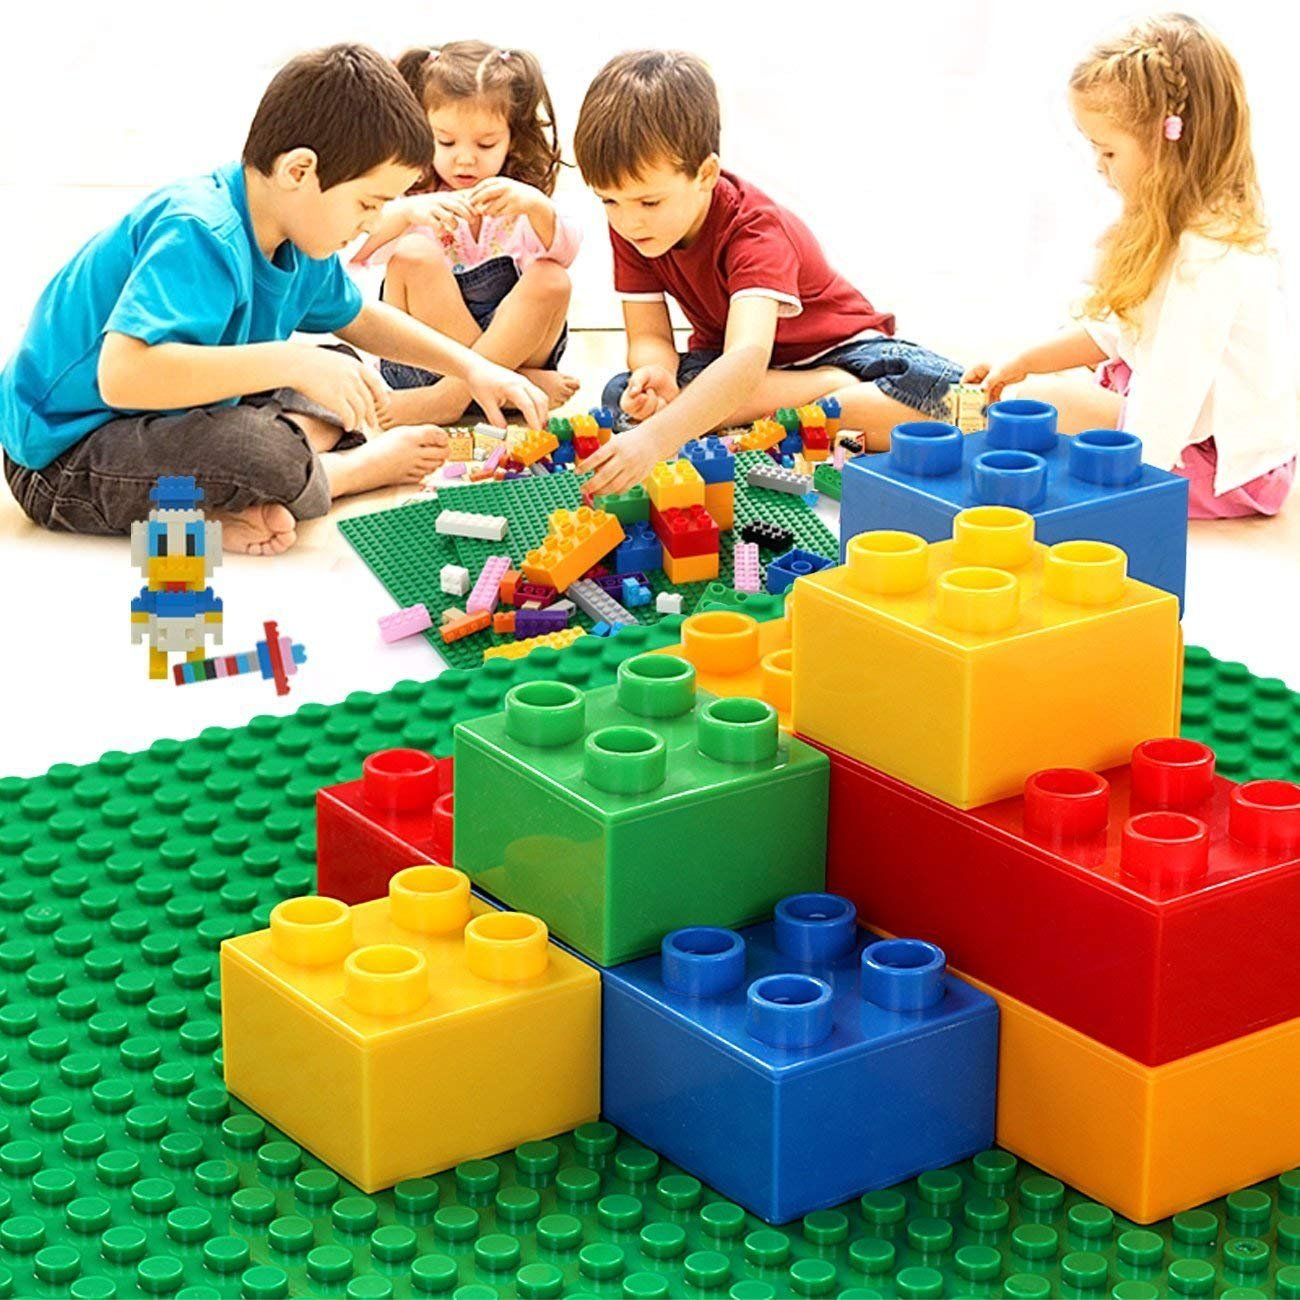 Wonderful Kids Building Bricks Base Plates 10''x10'' Compatible with All Major Brands,Green Building Brick Base Plates for Play Table or Displaying 4 Pack by EXERCISE N PLAY